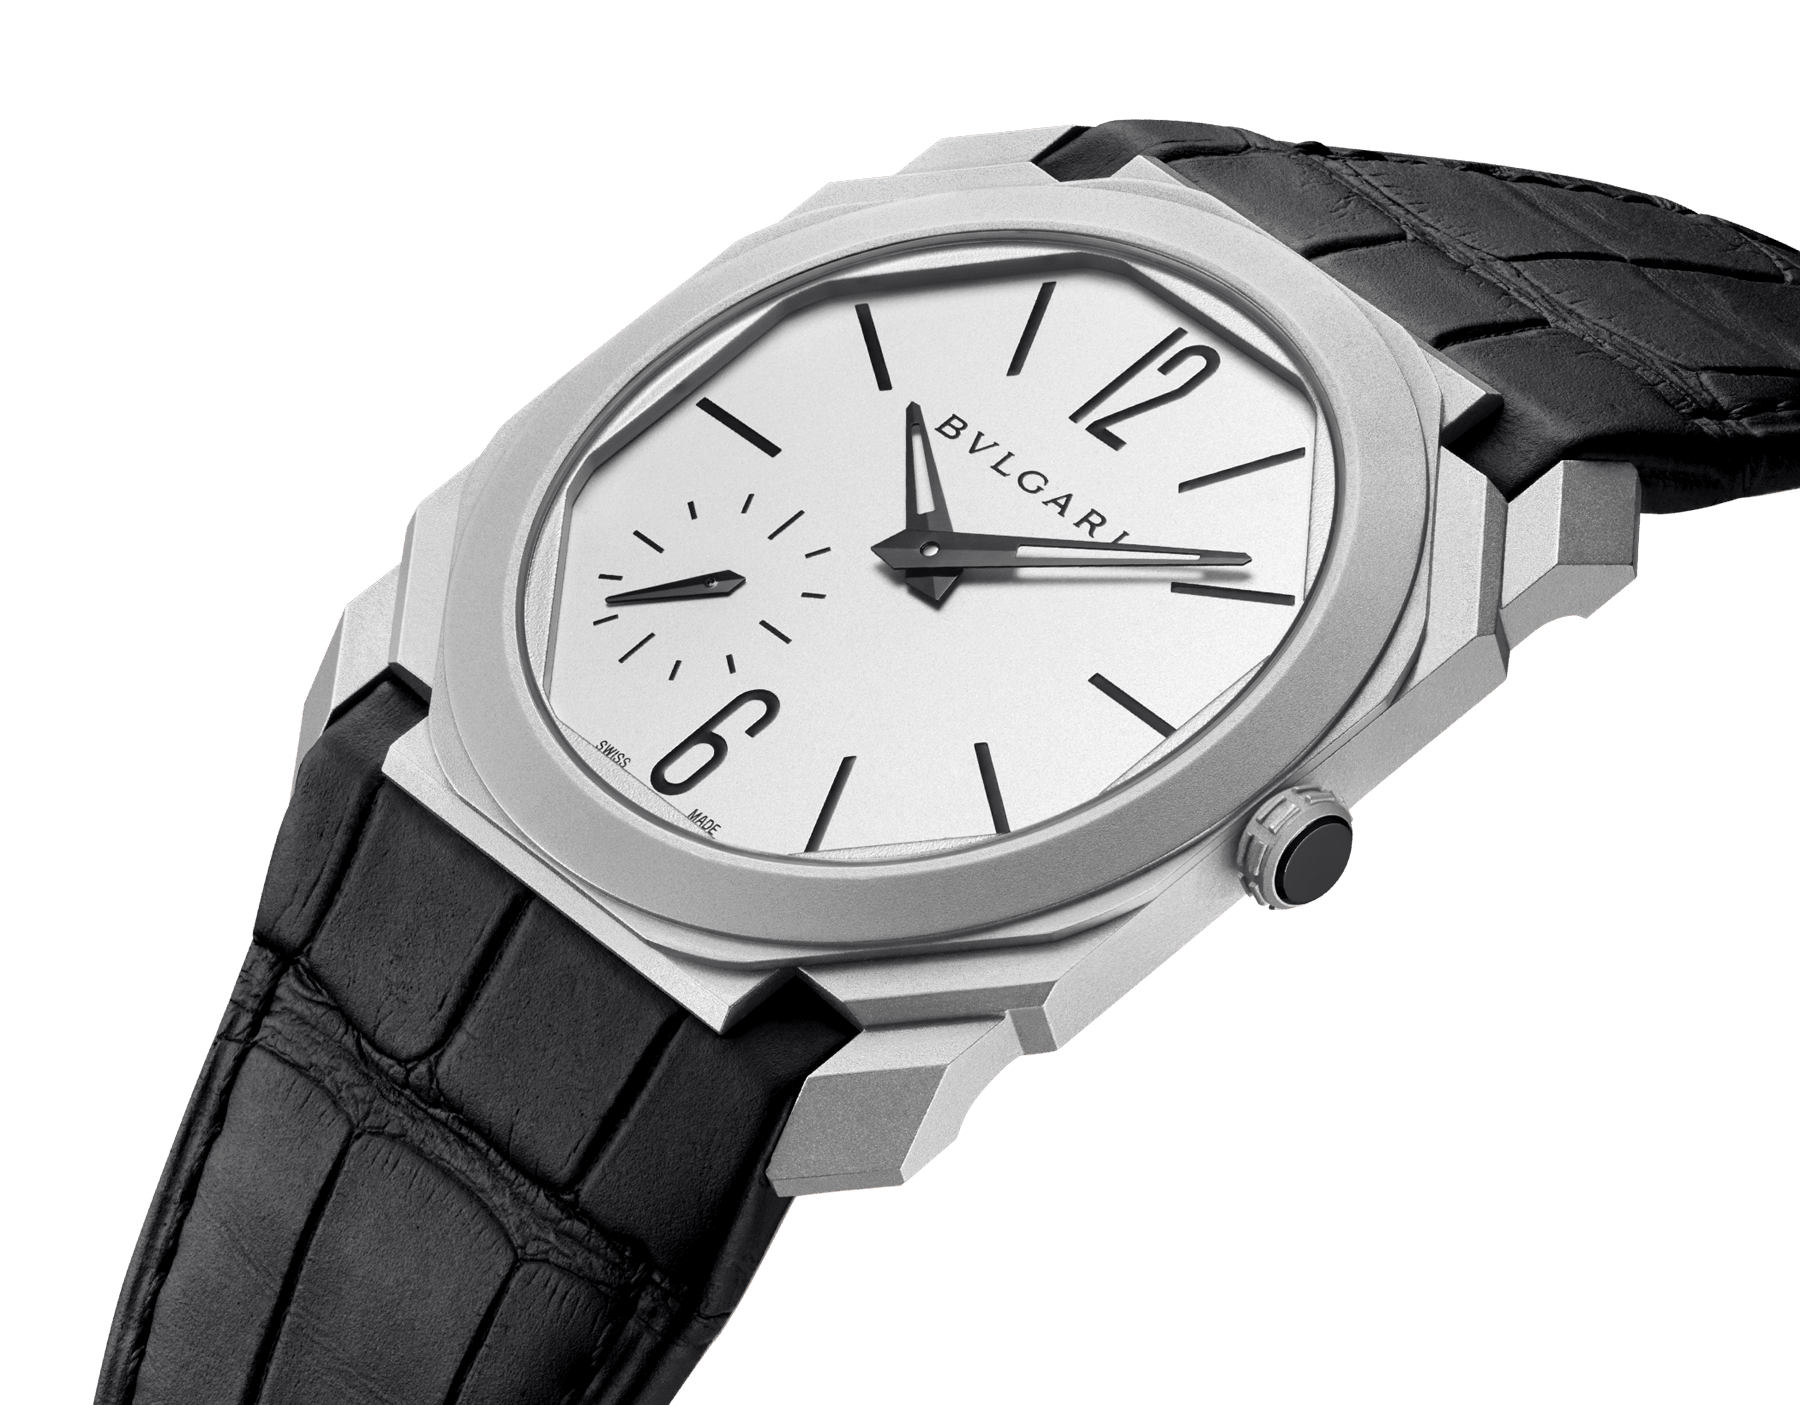 Octo Finissimo Automatic watch with mechanical manufacture movement, automatic winding, platinum microrotor, small seconds, extra-thin stainless steel case and dial, and black alligator bracelet 103035 image 2